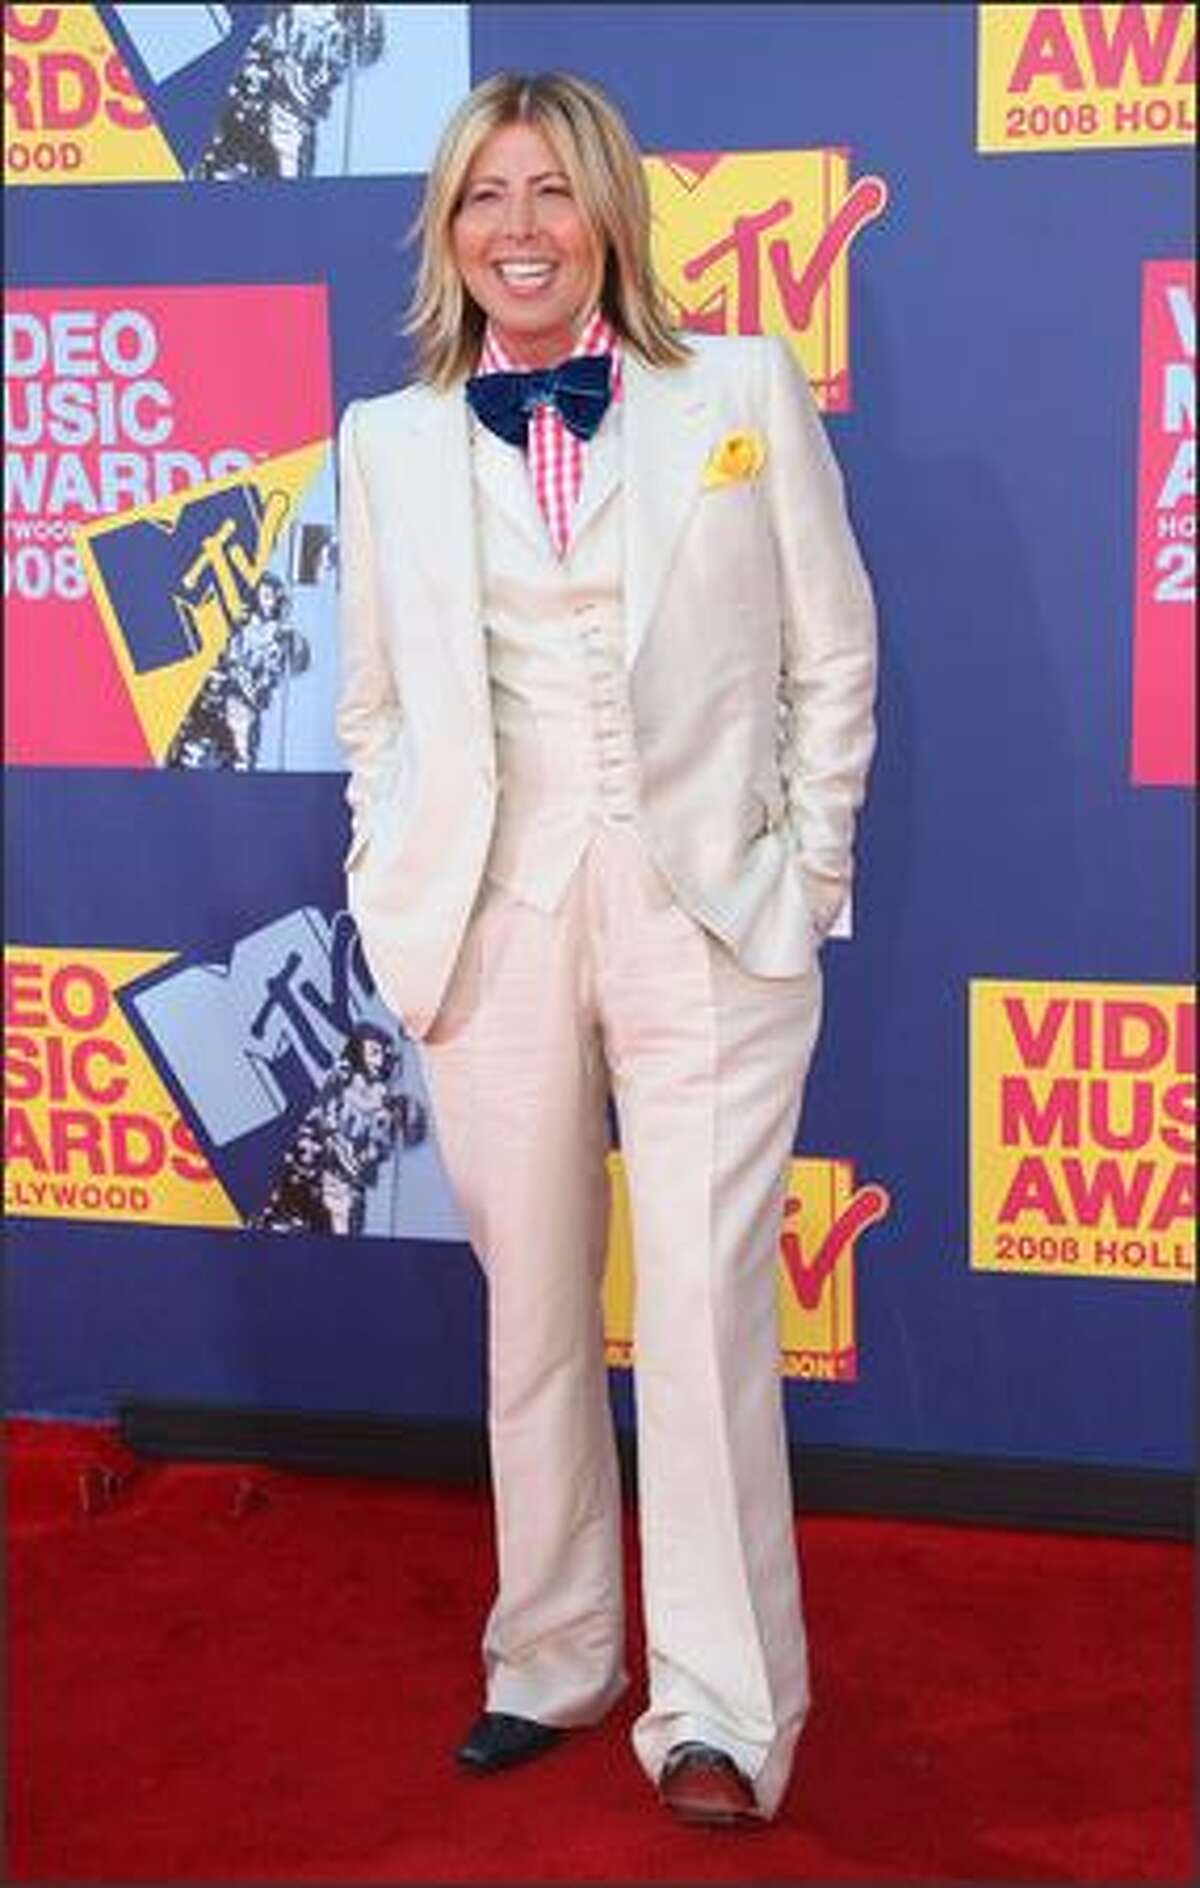 Fashion critic Steven 'Kojo' Cojocaru arrives at the 2008 MTV Video Music Awards at Paramount Pictures Studios on Sunday in Los Angeles, California.